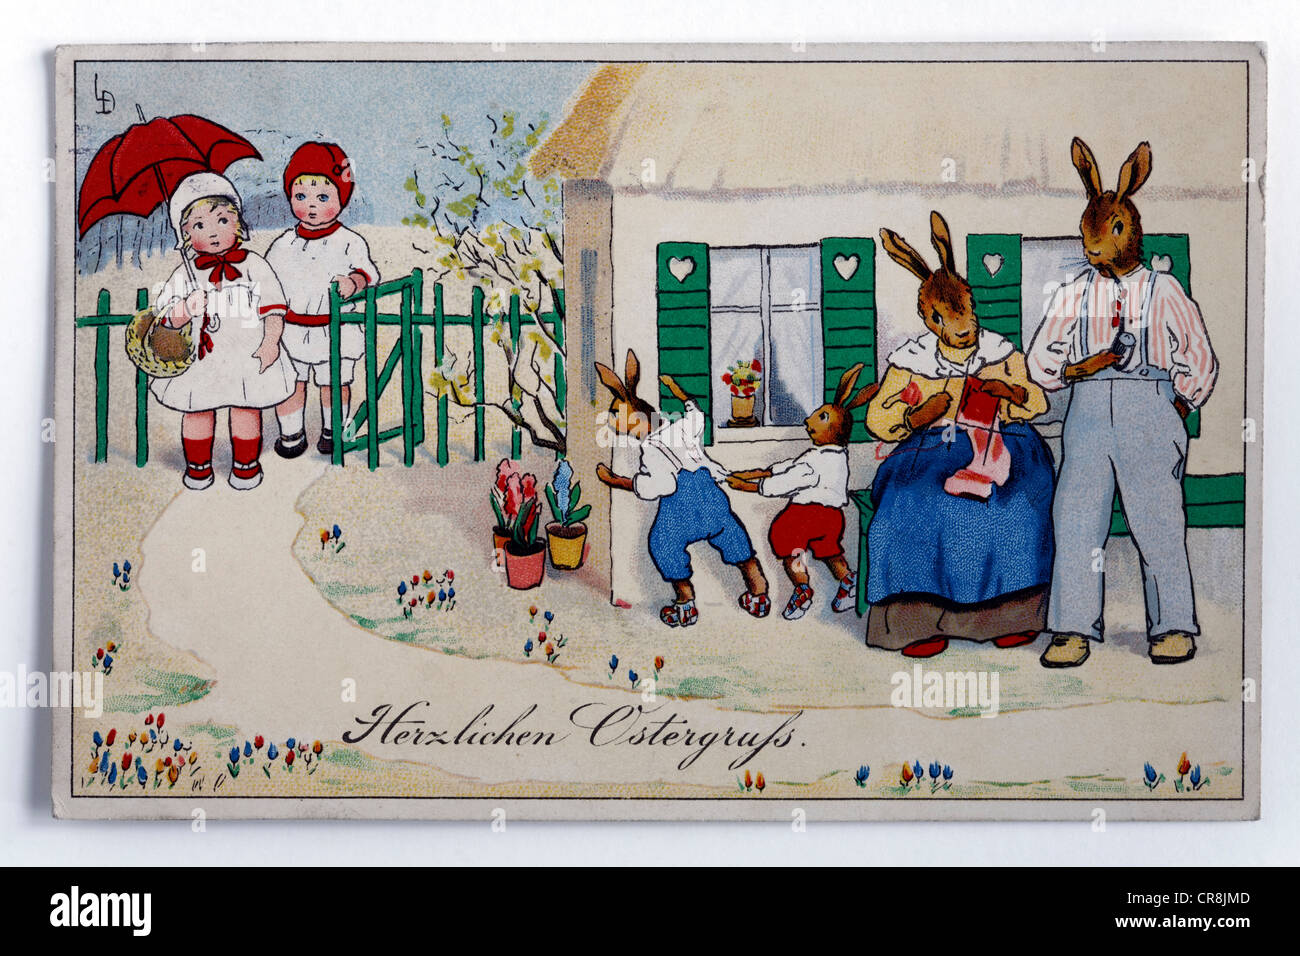 Easter greetings, children visiting an Easter bunny family, historical postcard, circa 1900 - Stock Image